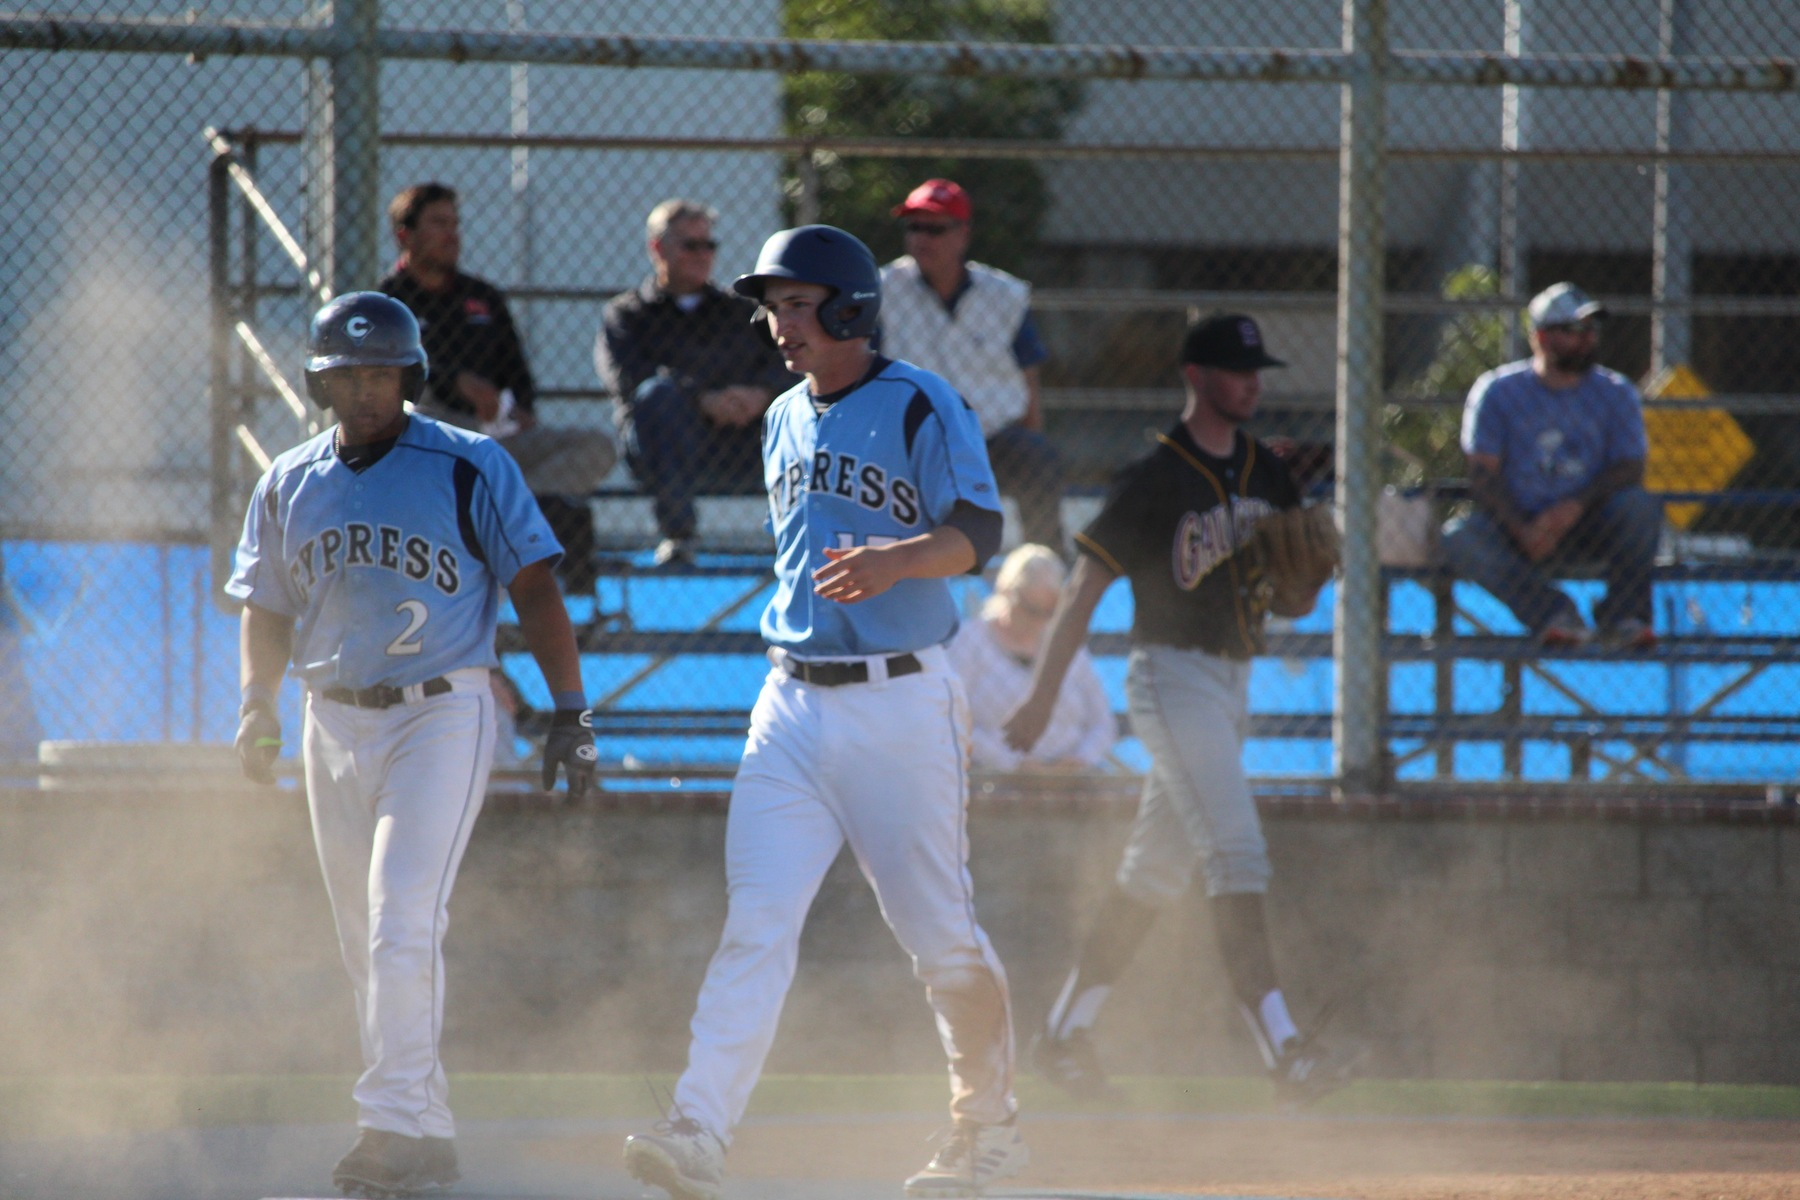 Chargers Even Series with Gauchos on 11th Inning Walk-Off, 6-5